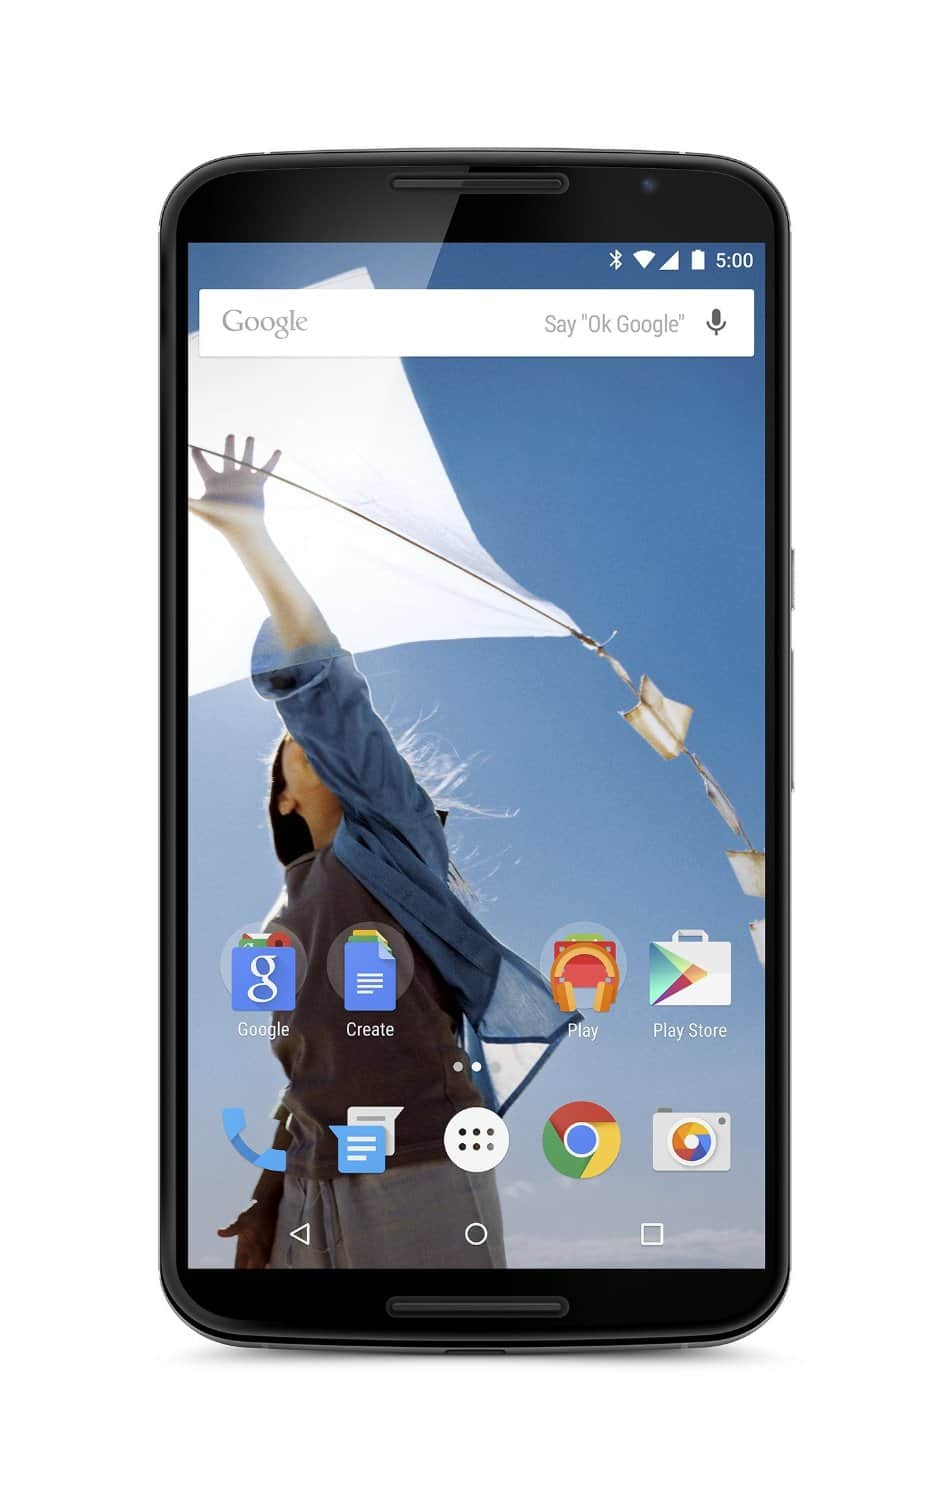 Motorola Nexus 6 - 32 GB - Unlocked (Used - Very Good) White for $189.99, Blue for $192.99 + FS (Prime) (Amazon Warehouse)